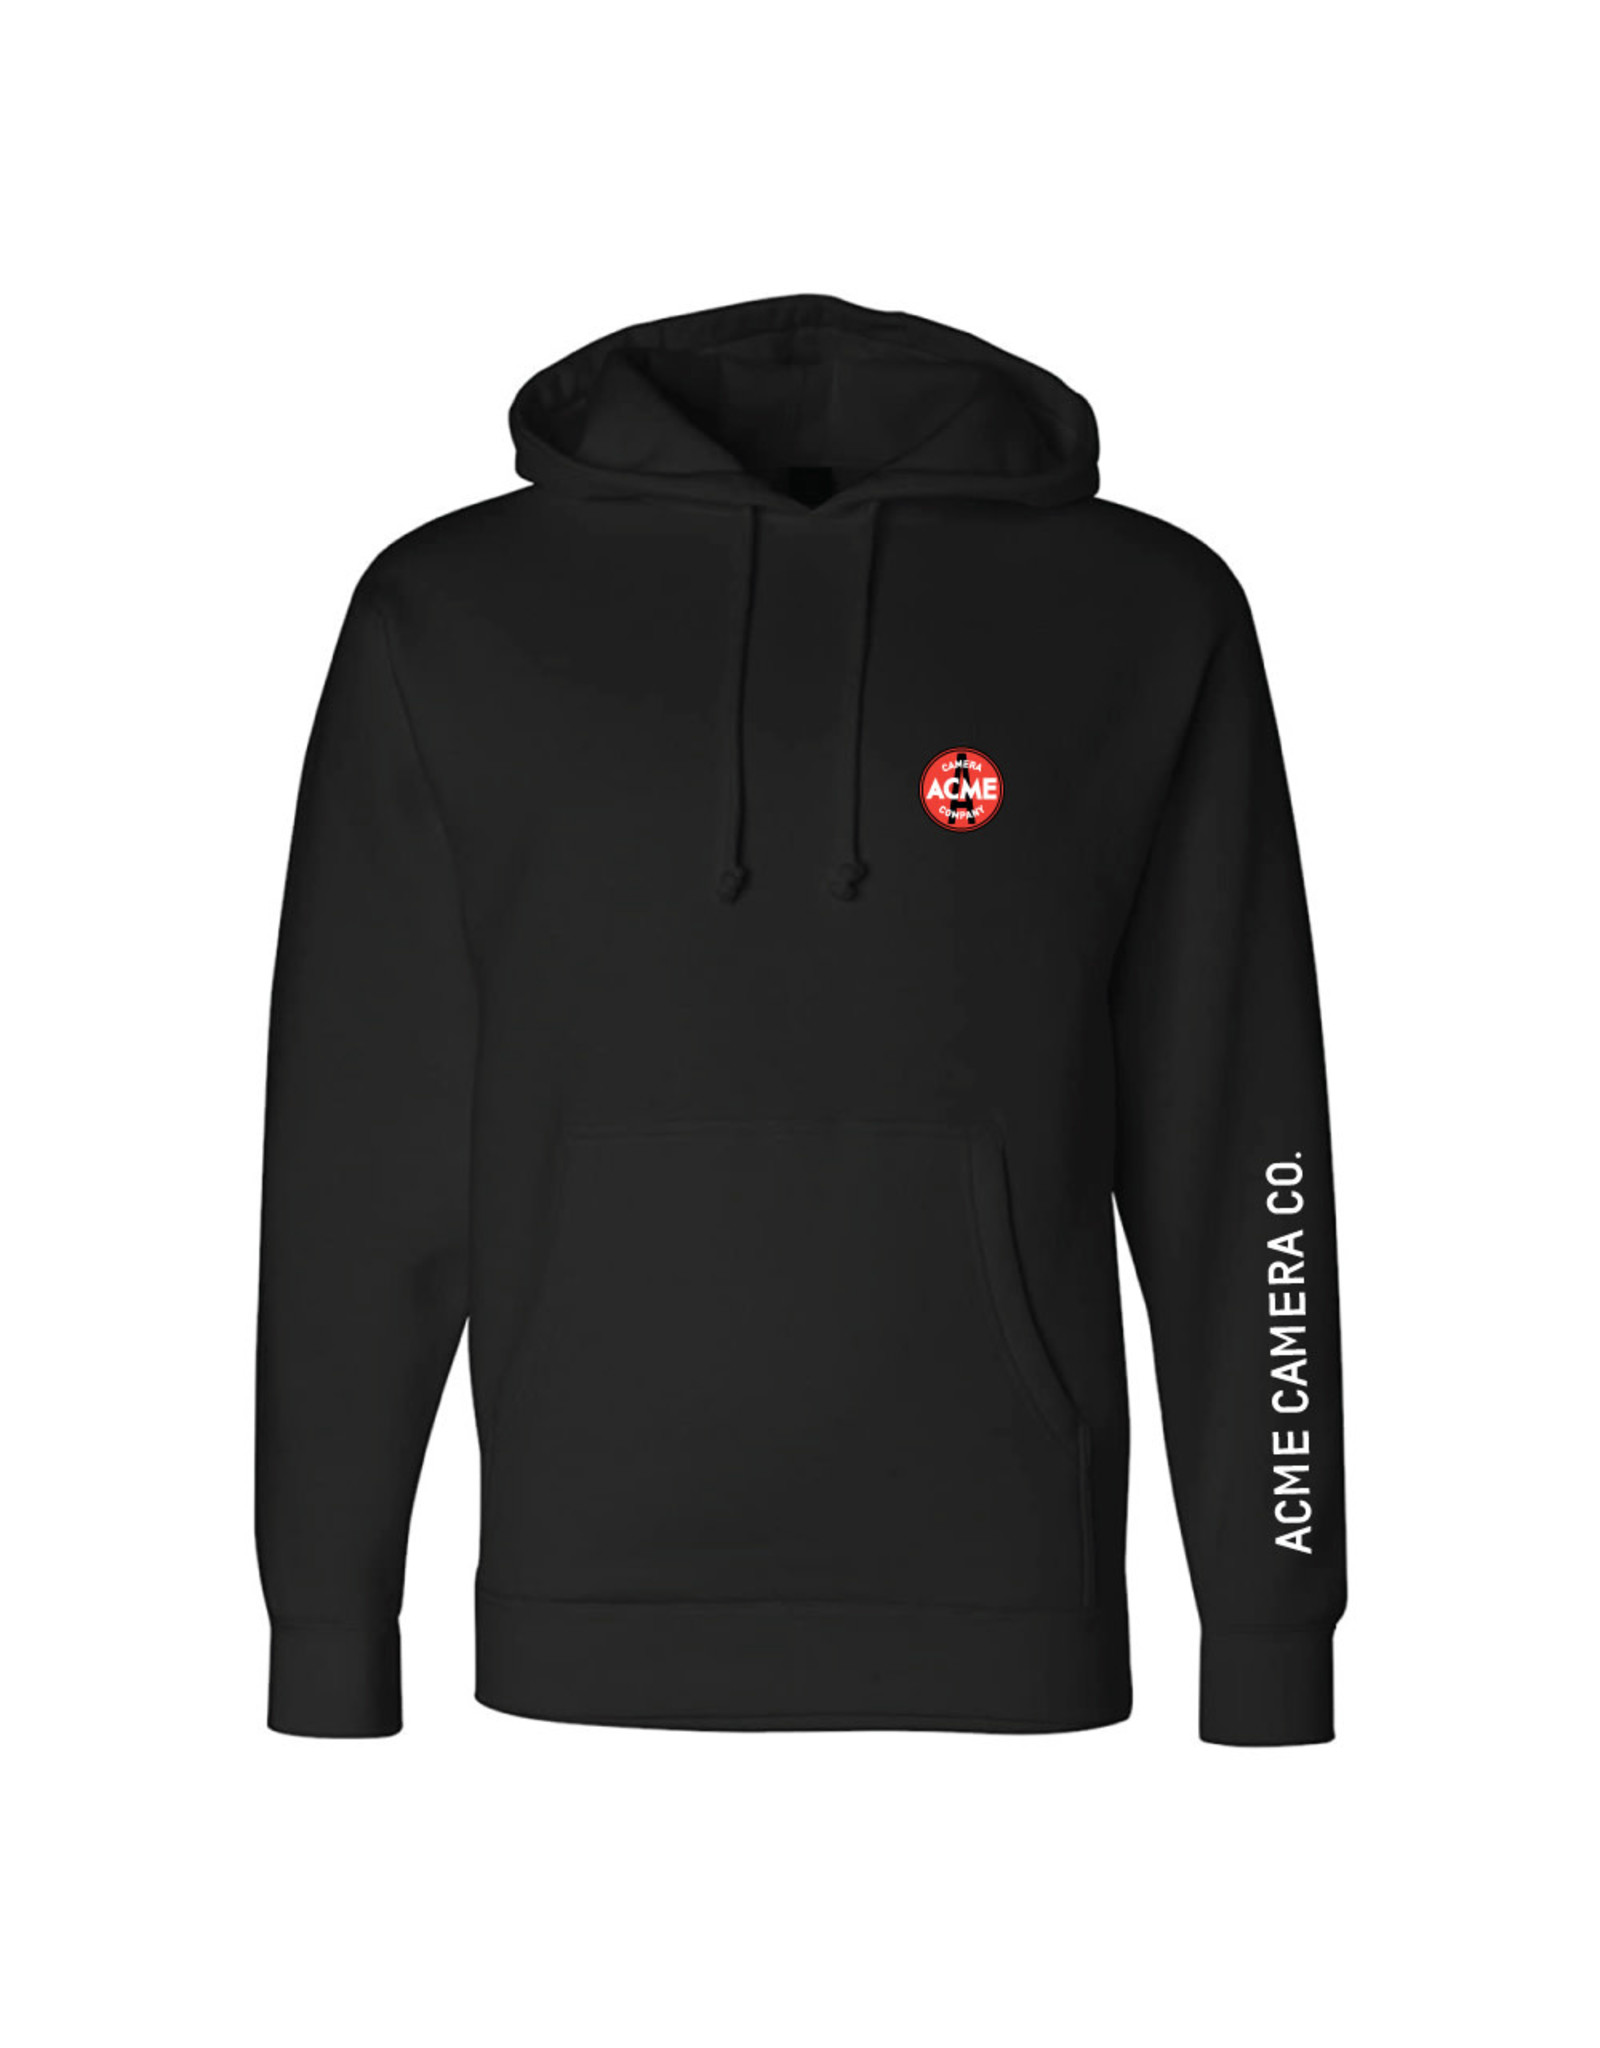 acme camera Acme Aperture Hoodie in Black